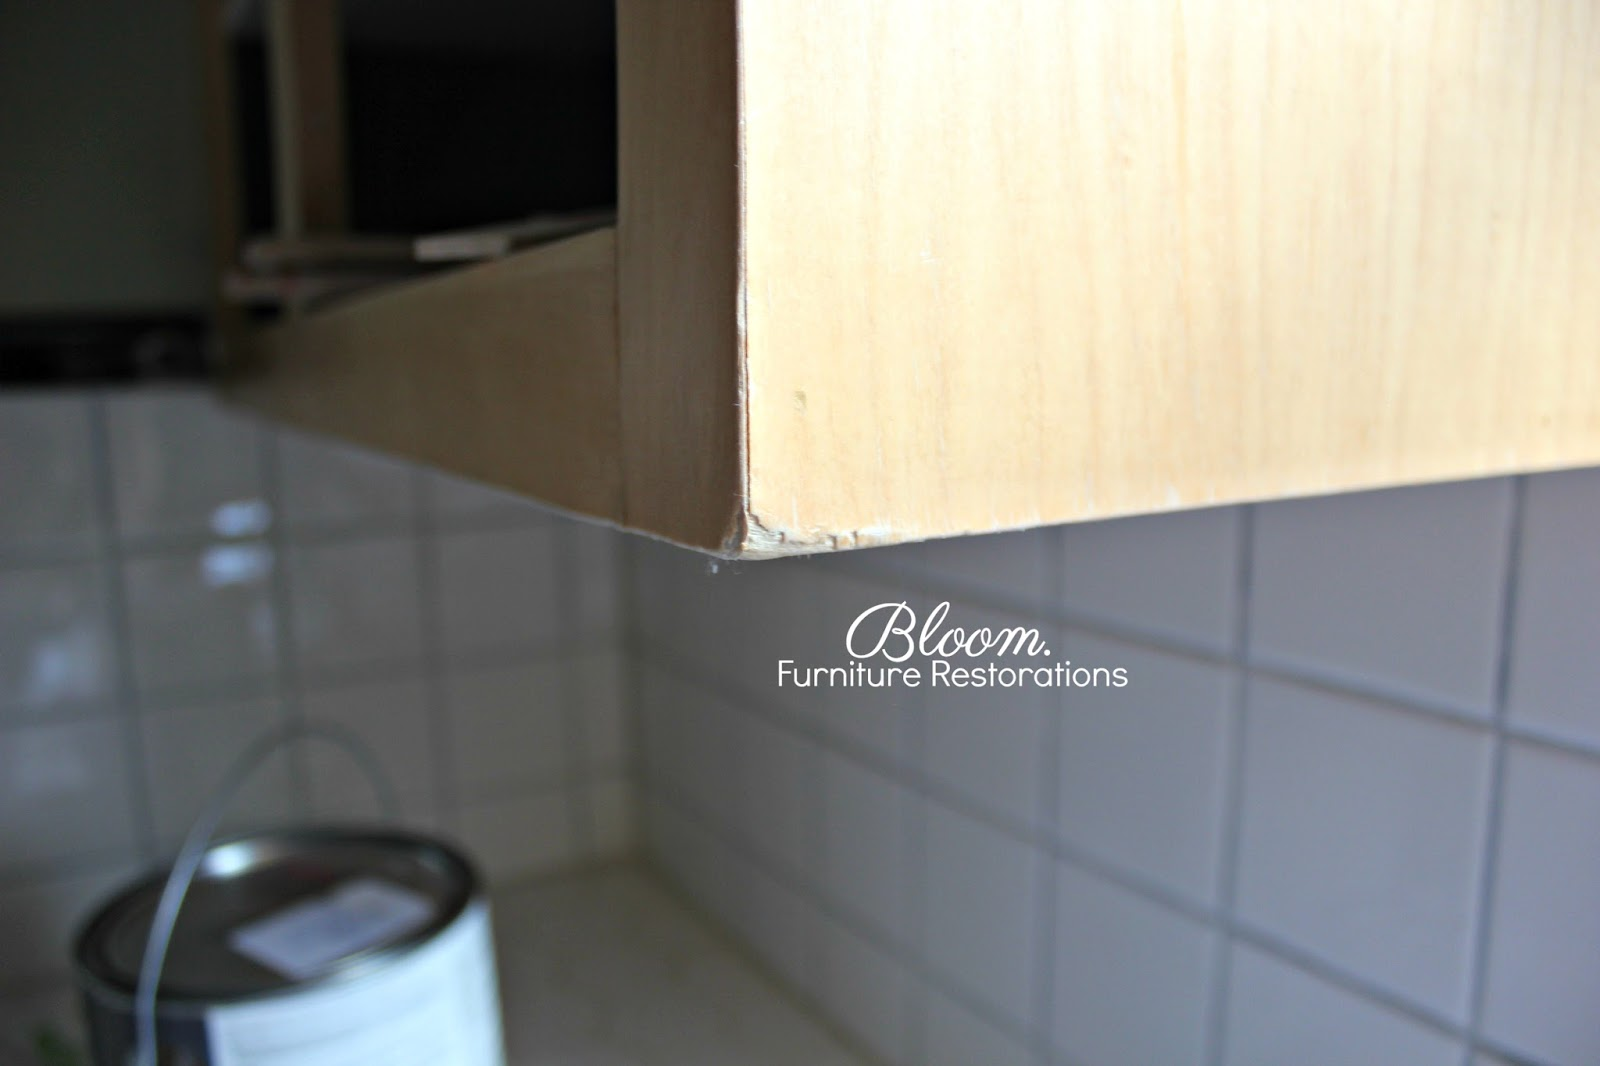 Kitchen Cabinet Laminate Veneer Bloom Diy Series Kitchen Redo How To Repair Chipped Laminate